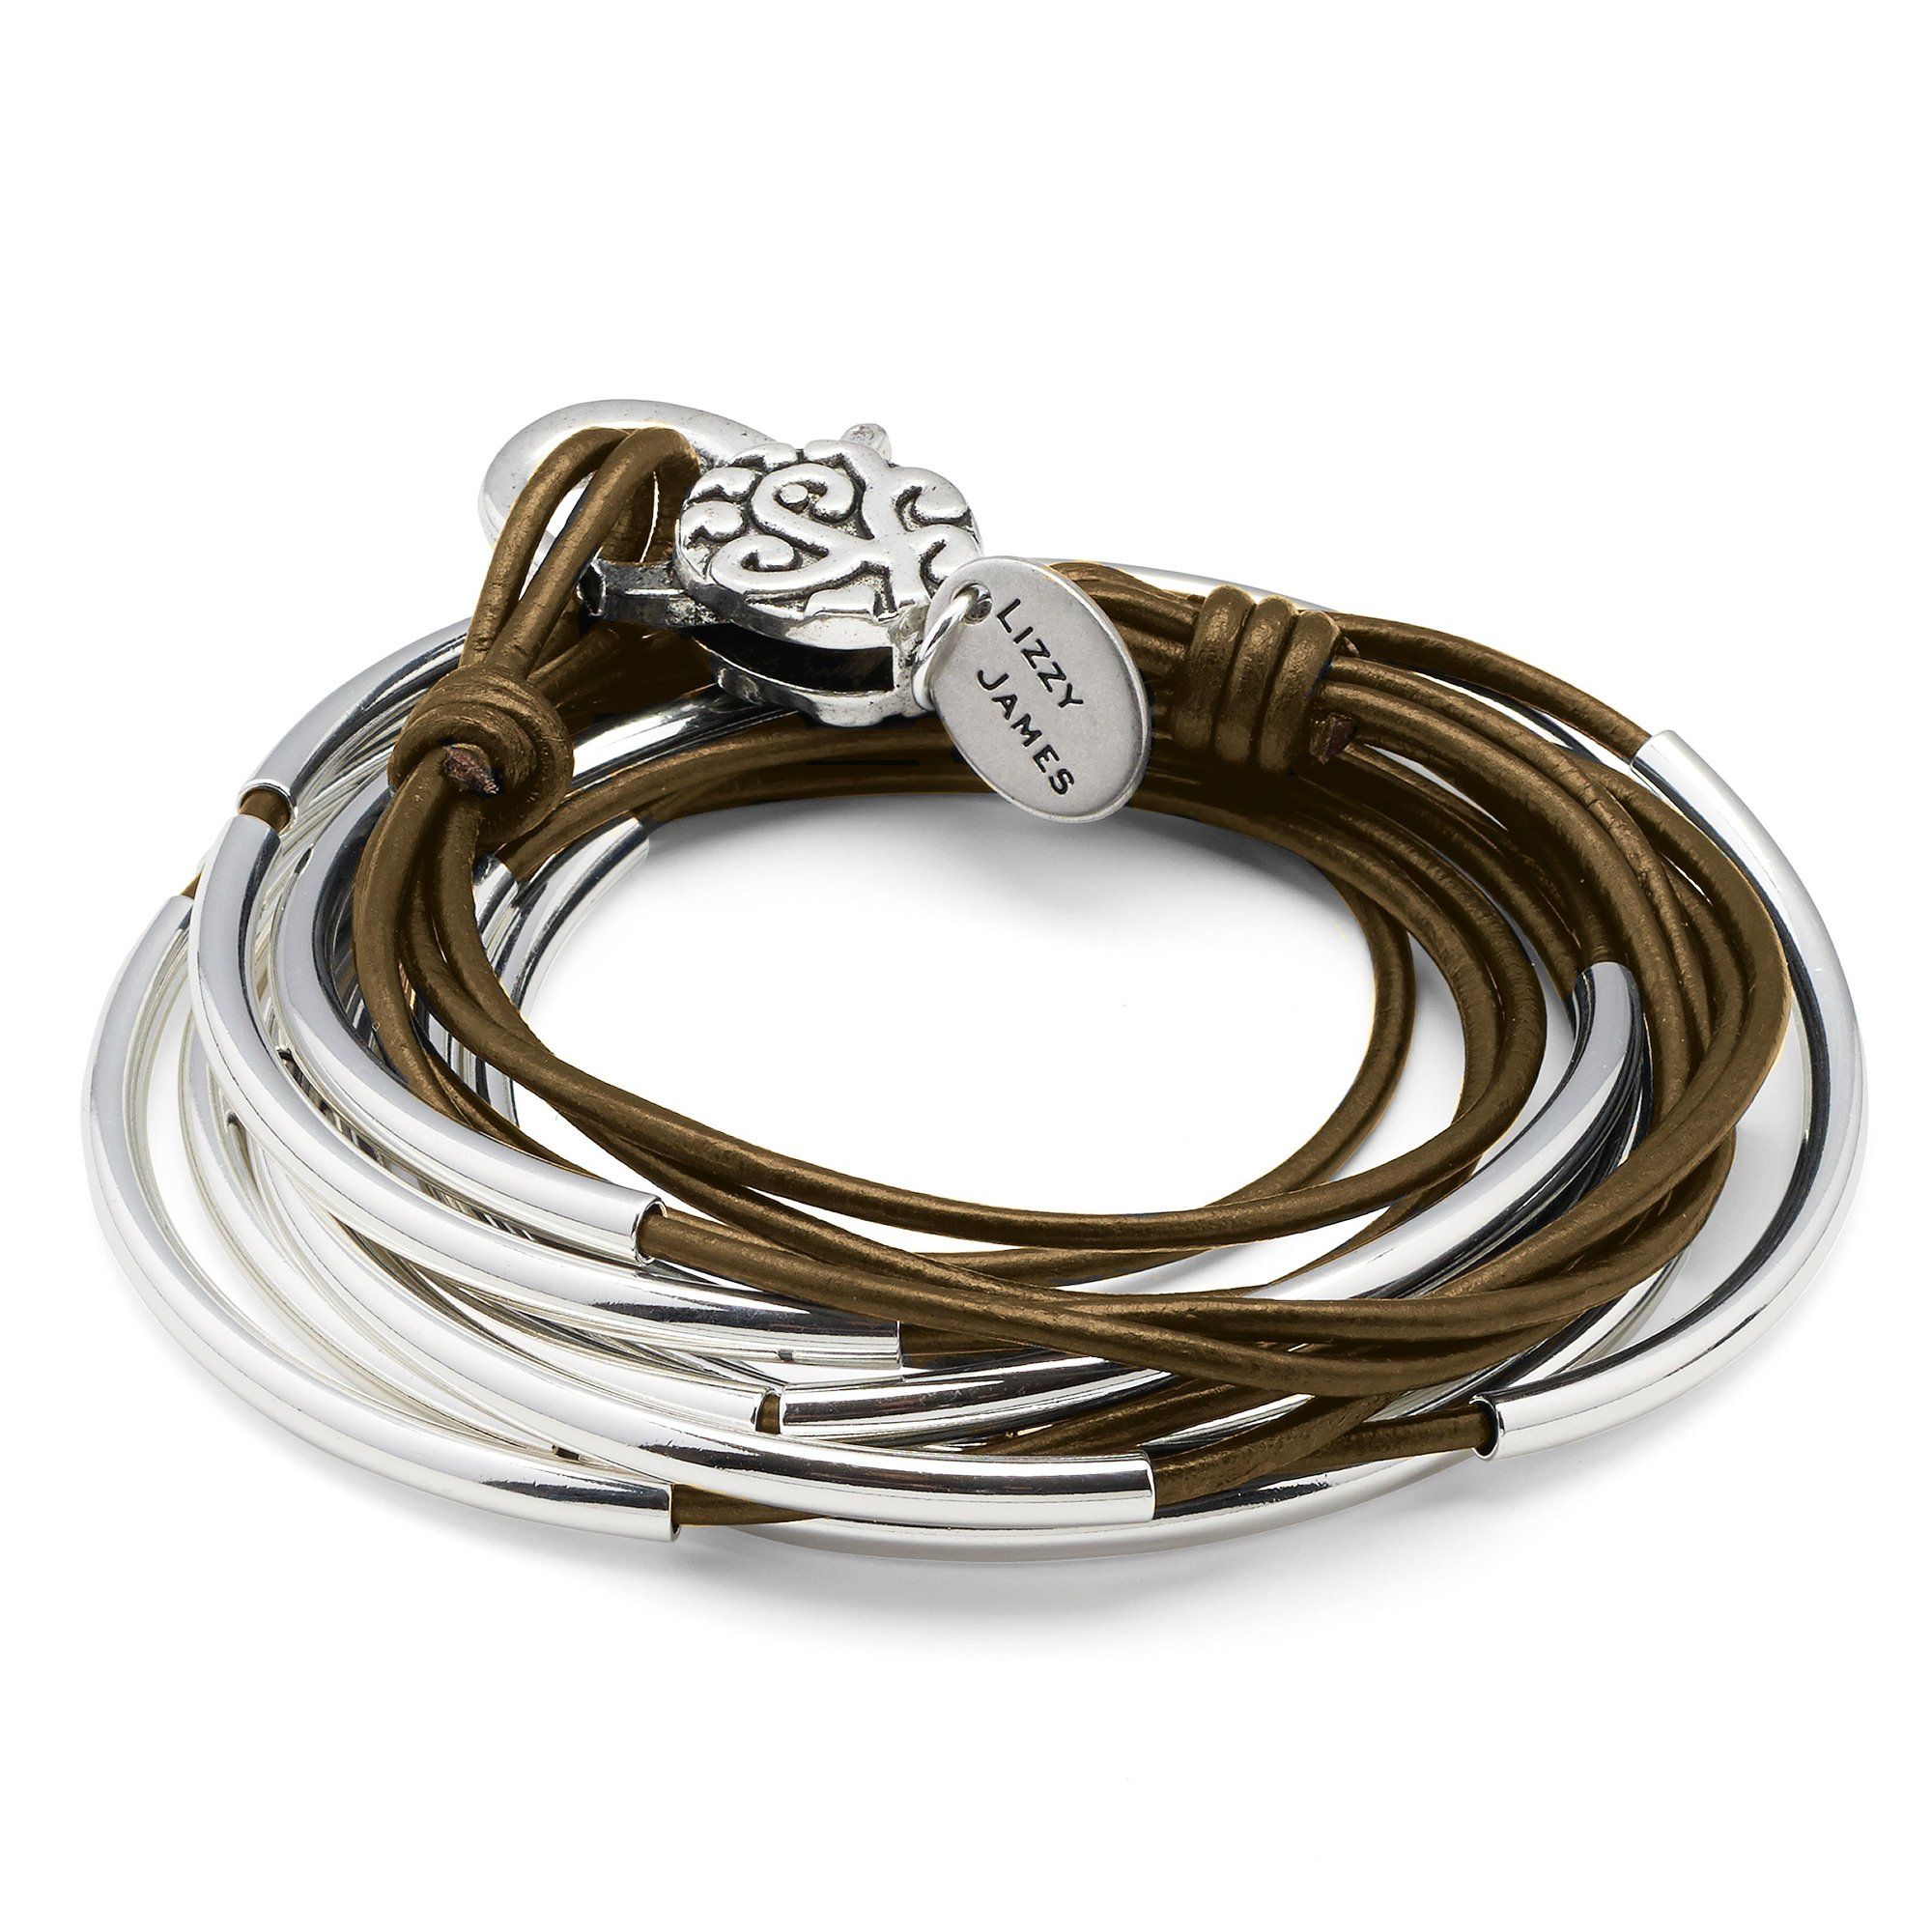 Lizzy Classic Metallic Bronze Leather and Silver Wrap Bracelet Necklace (SMALL)